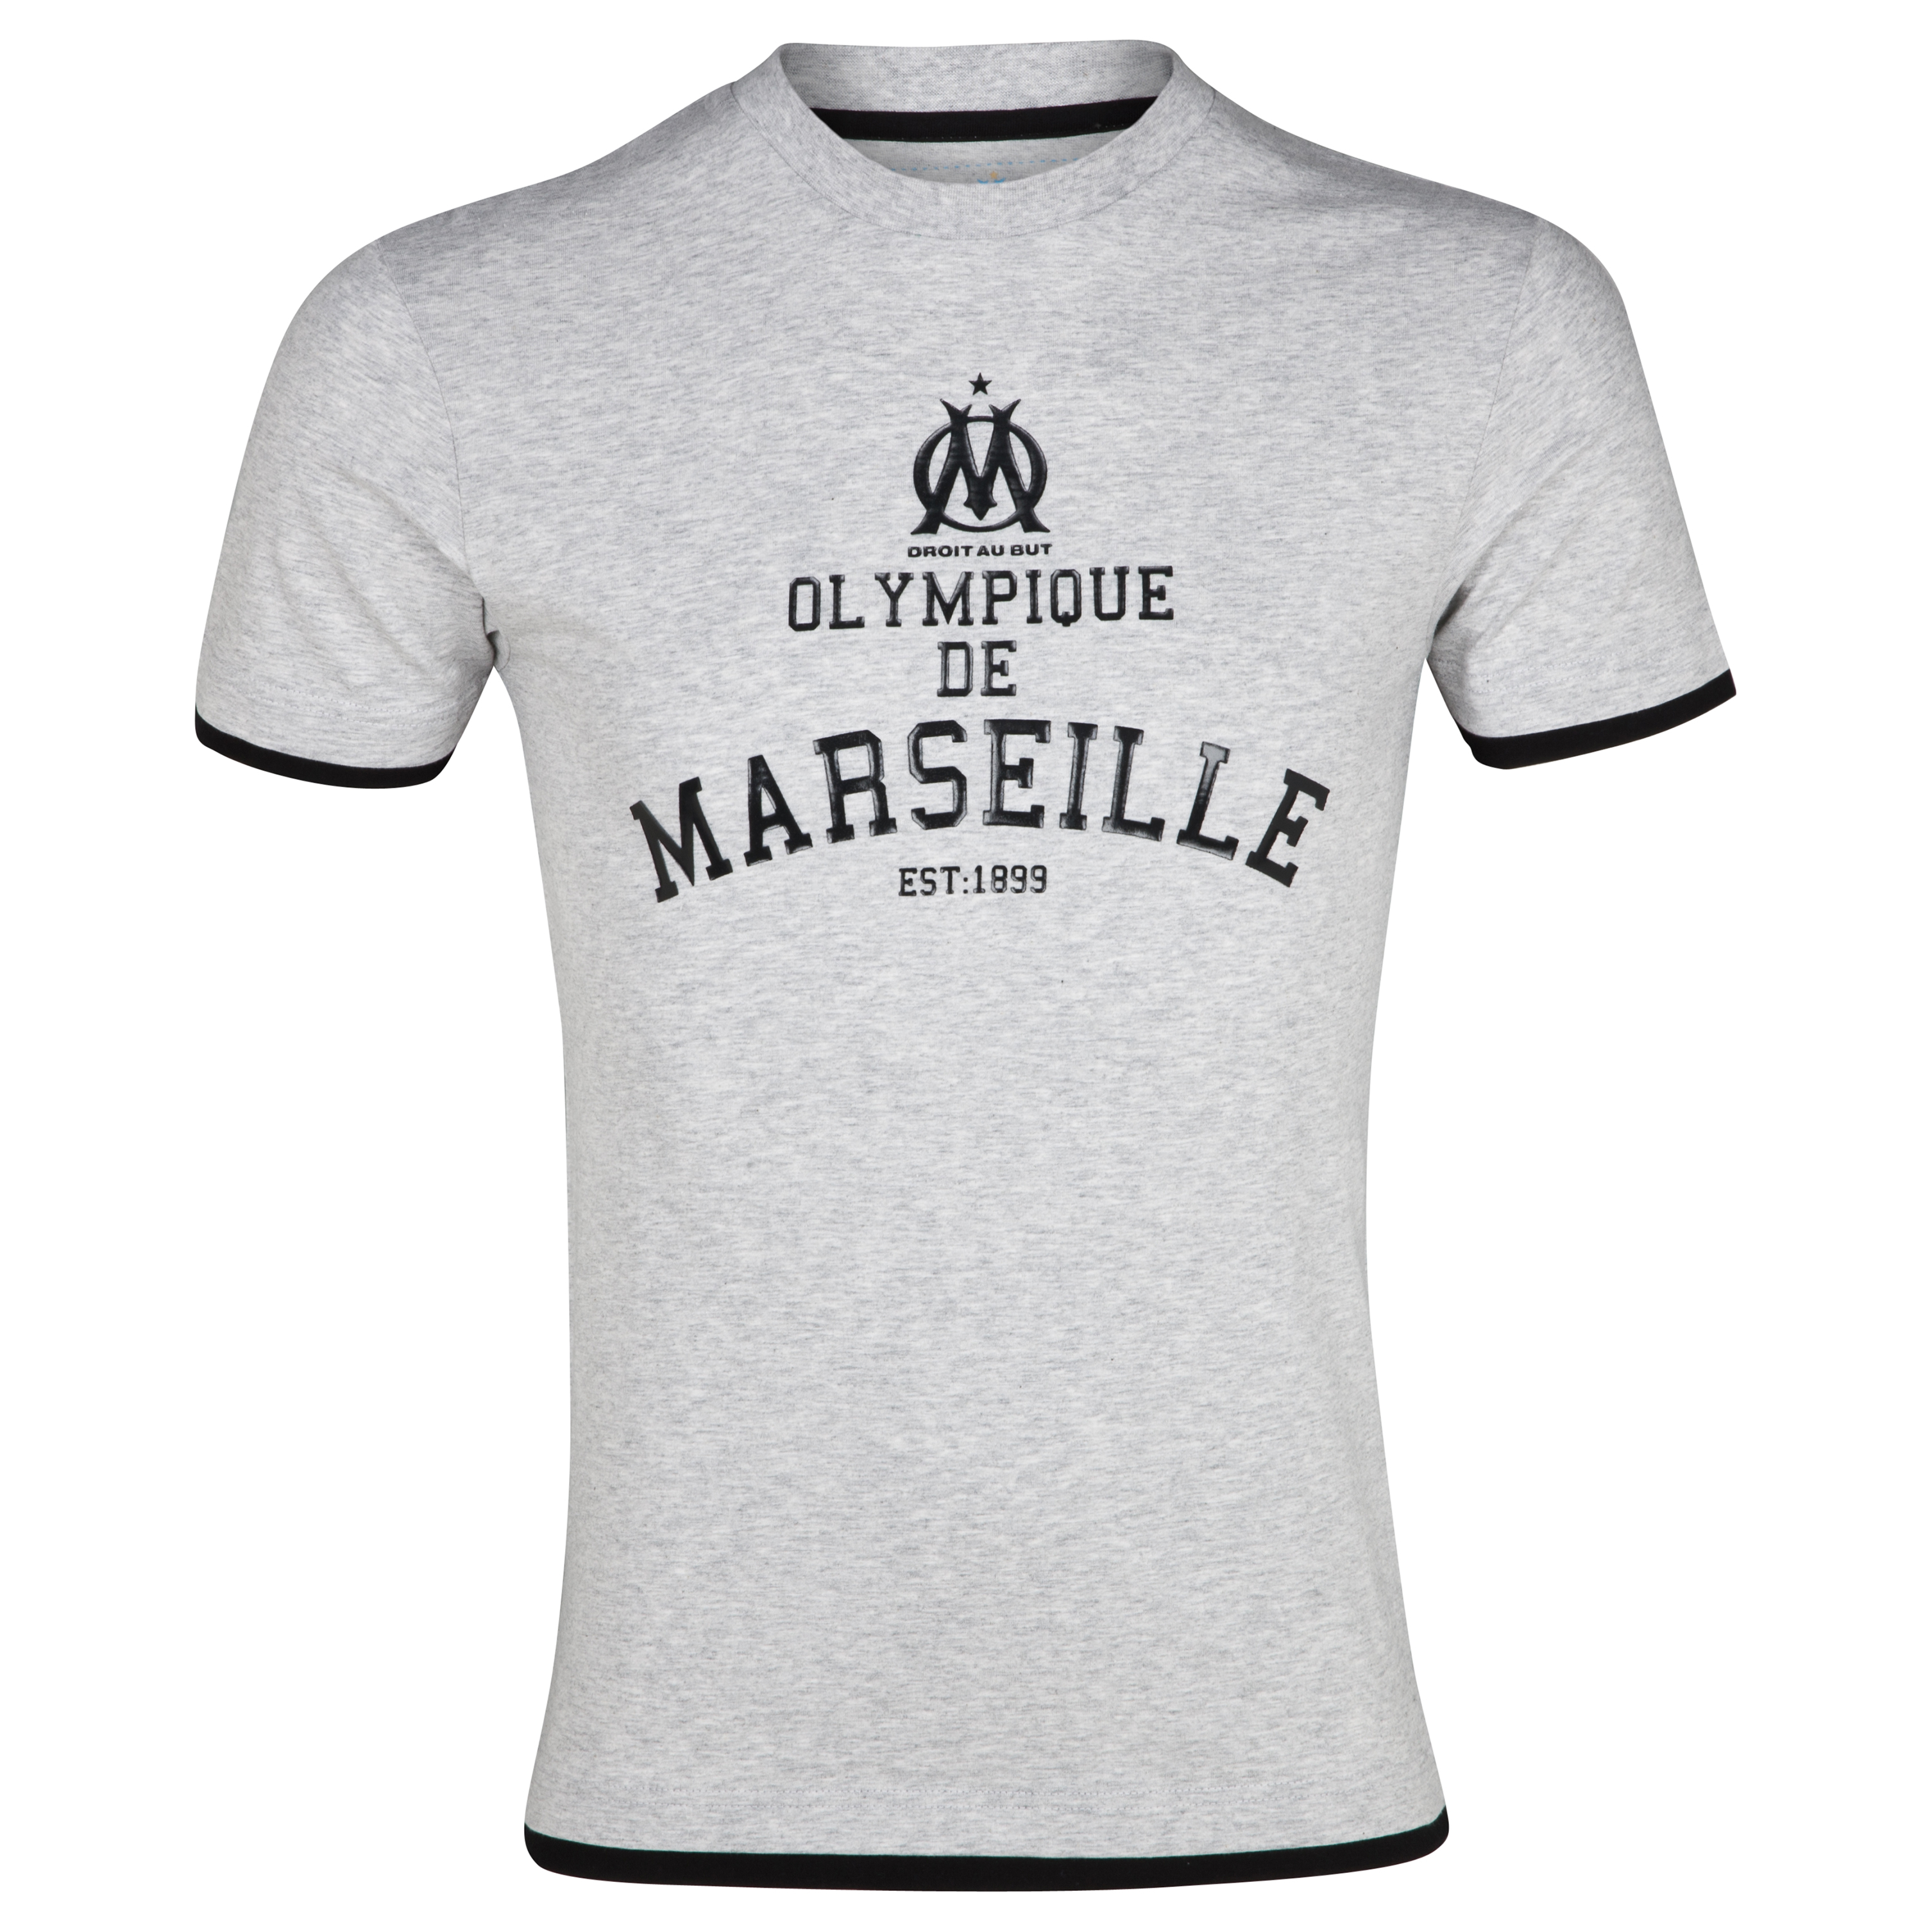 Olympique de Marseille Athletic Crew Neck T-Shirt - Grey - Junior